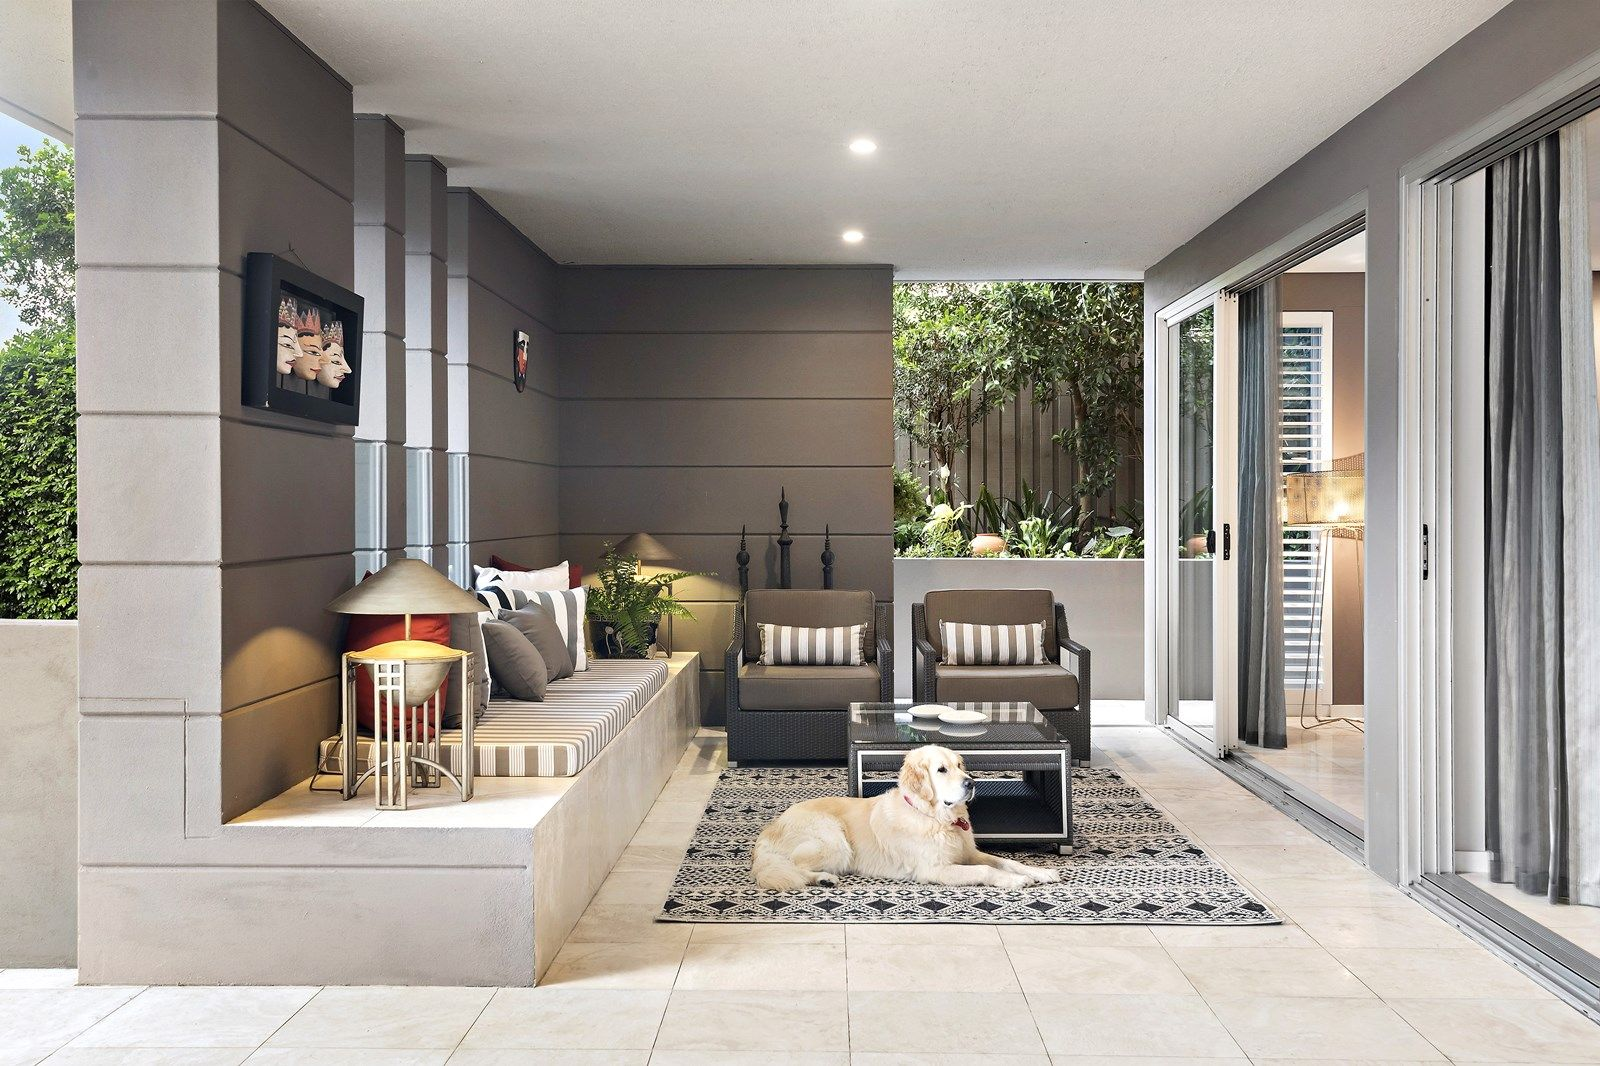 Luxury property sales show no signs of slowing, says Tim.